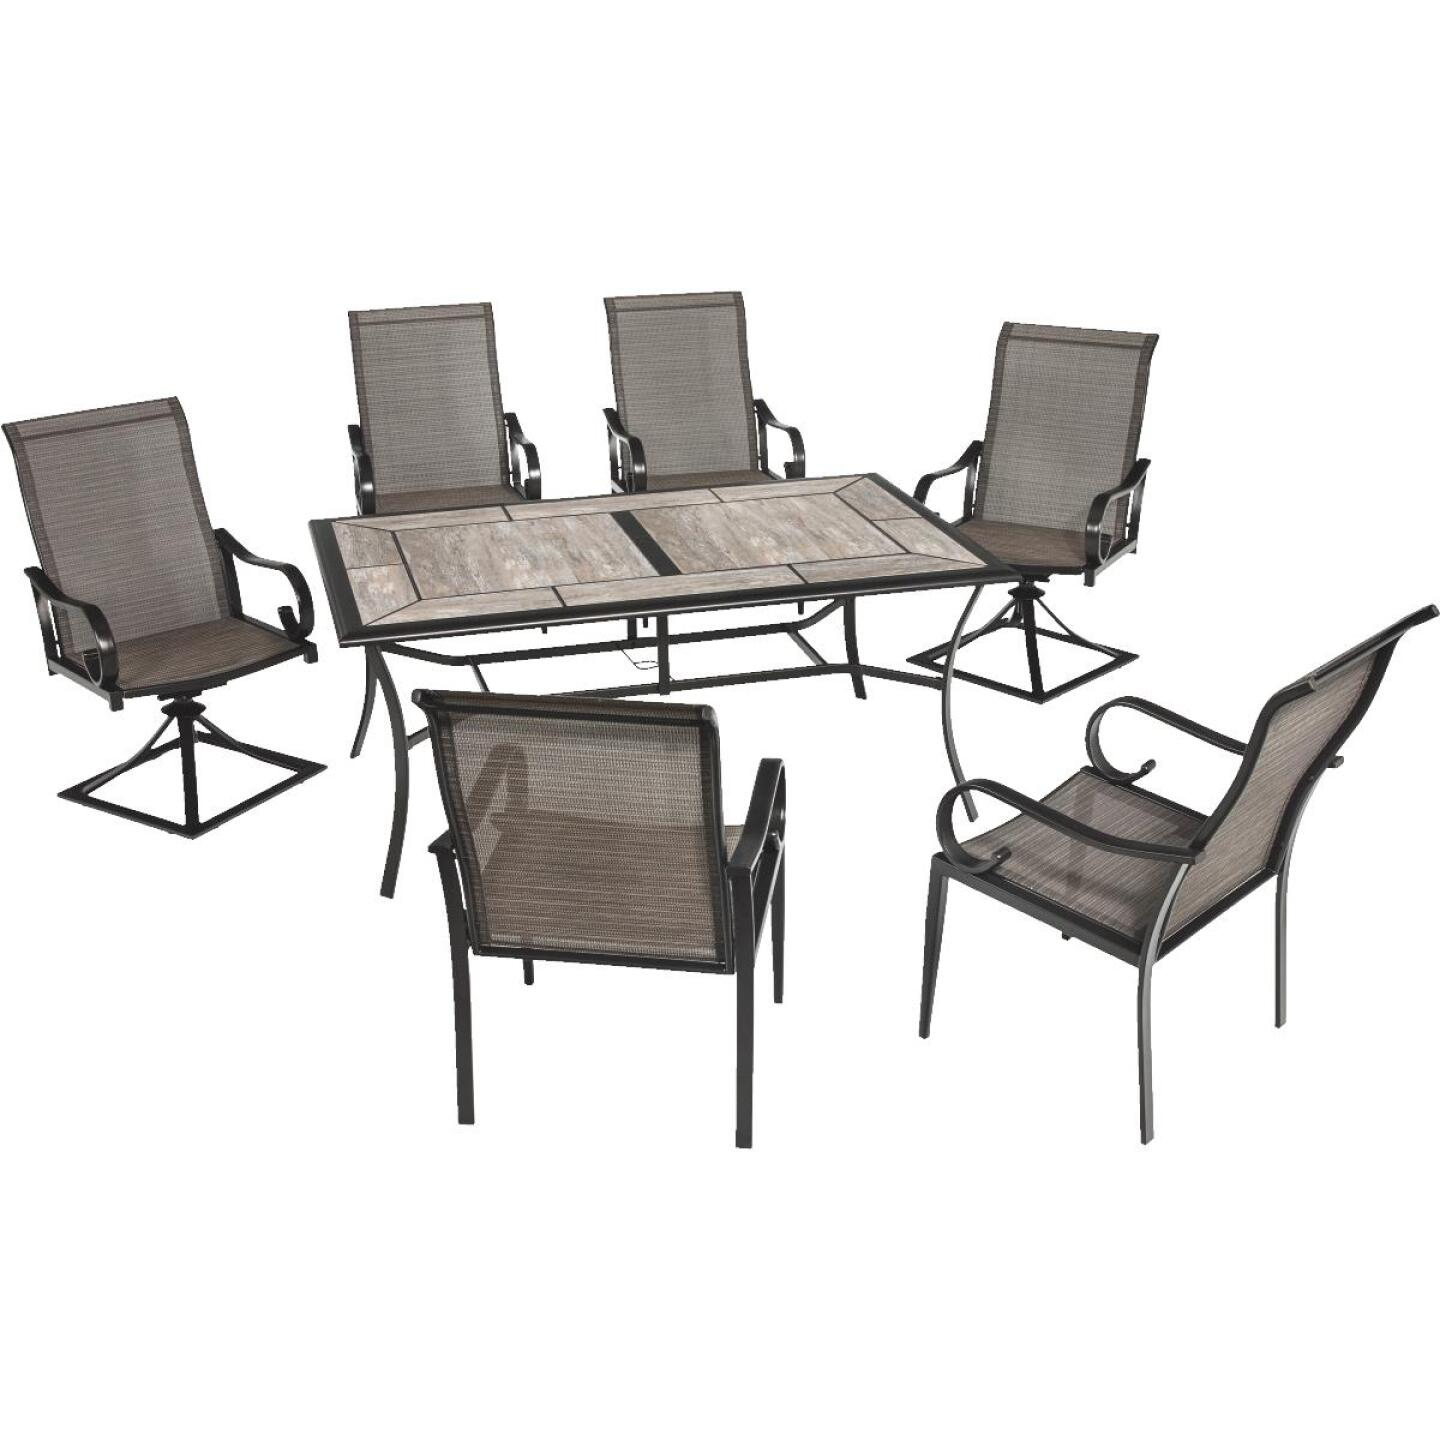 Outdoor Expressions Berkshire 7-Piece Dining Set Image 47